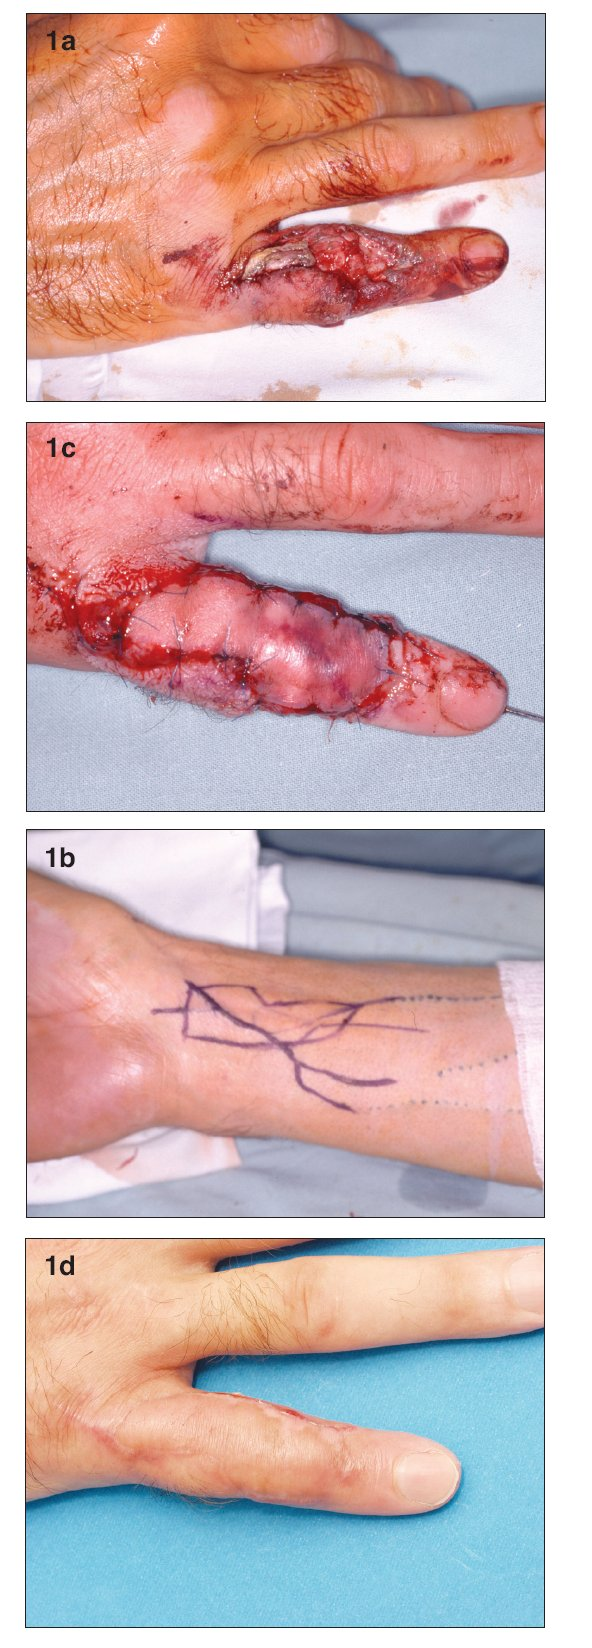 a. Defect with exposure of the proximal interphalangeal joint and loss of extensor tendon